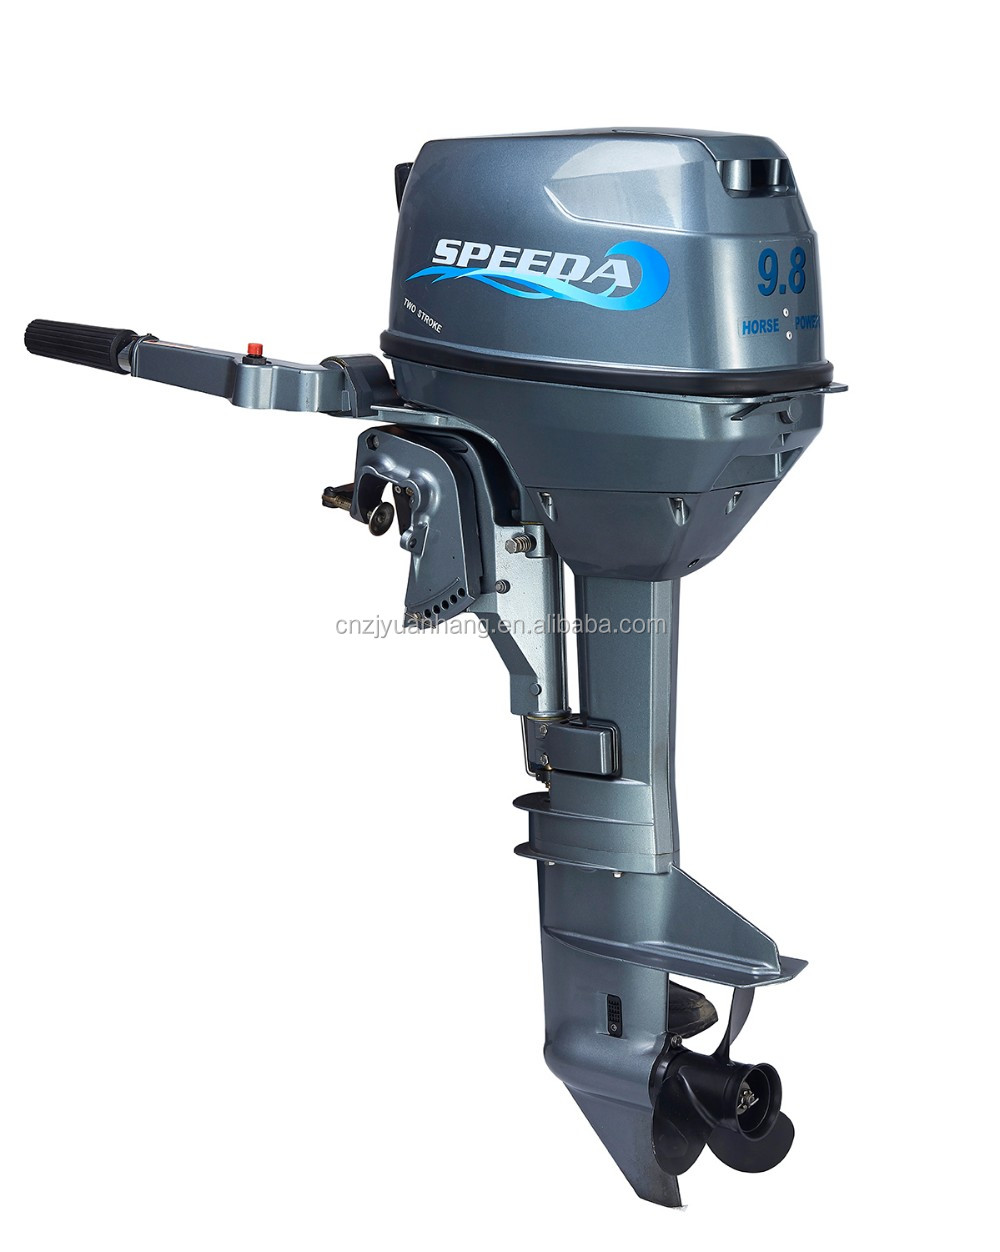 New 2 Stroke Boat Motor Fishing Boat Outboard Motors